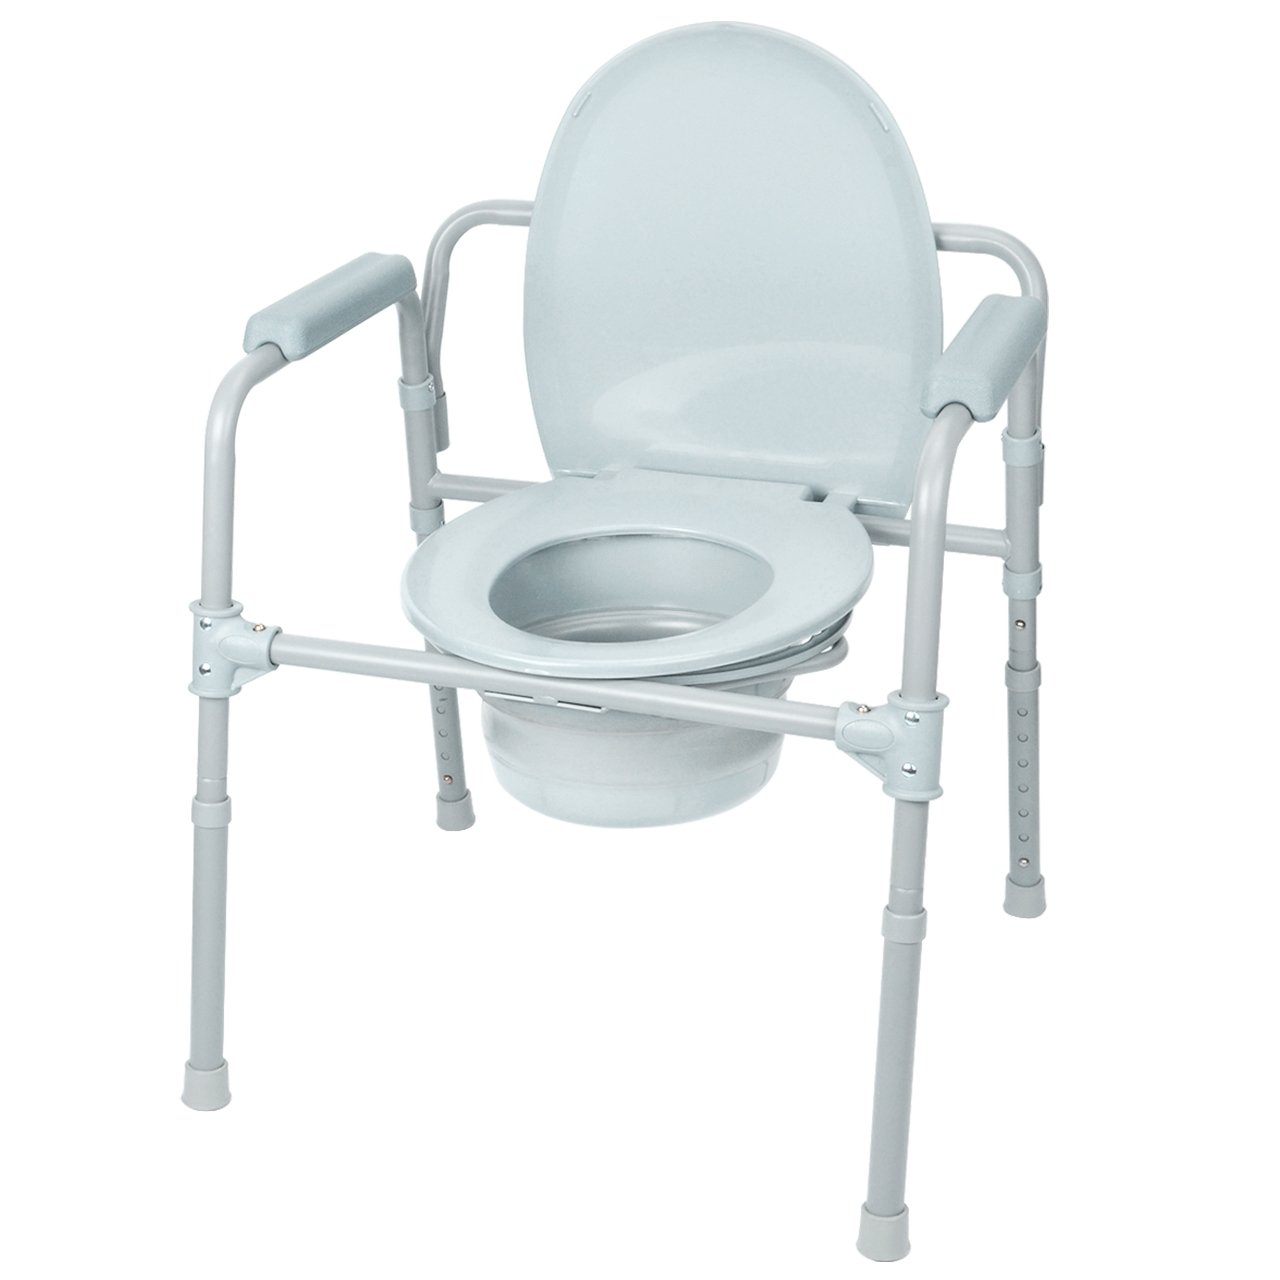 LIVINGbasics 7 Position Commode Chair Aluminum alloy Toilet Seat Chair With Folding Commode Bucket, Versatile Design